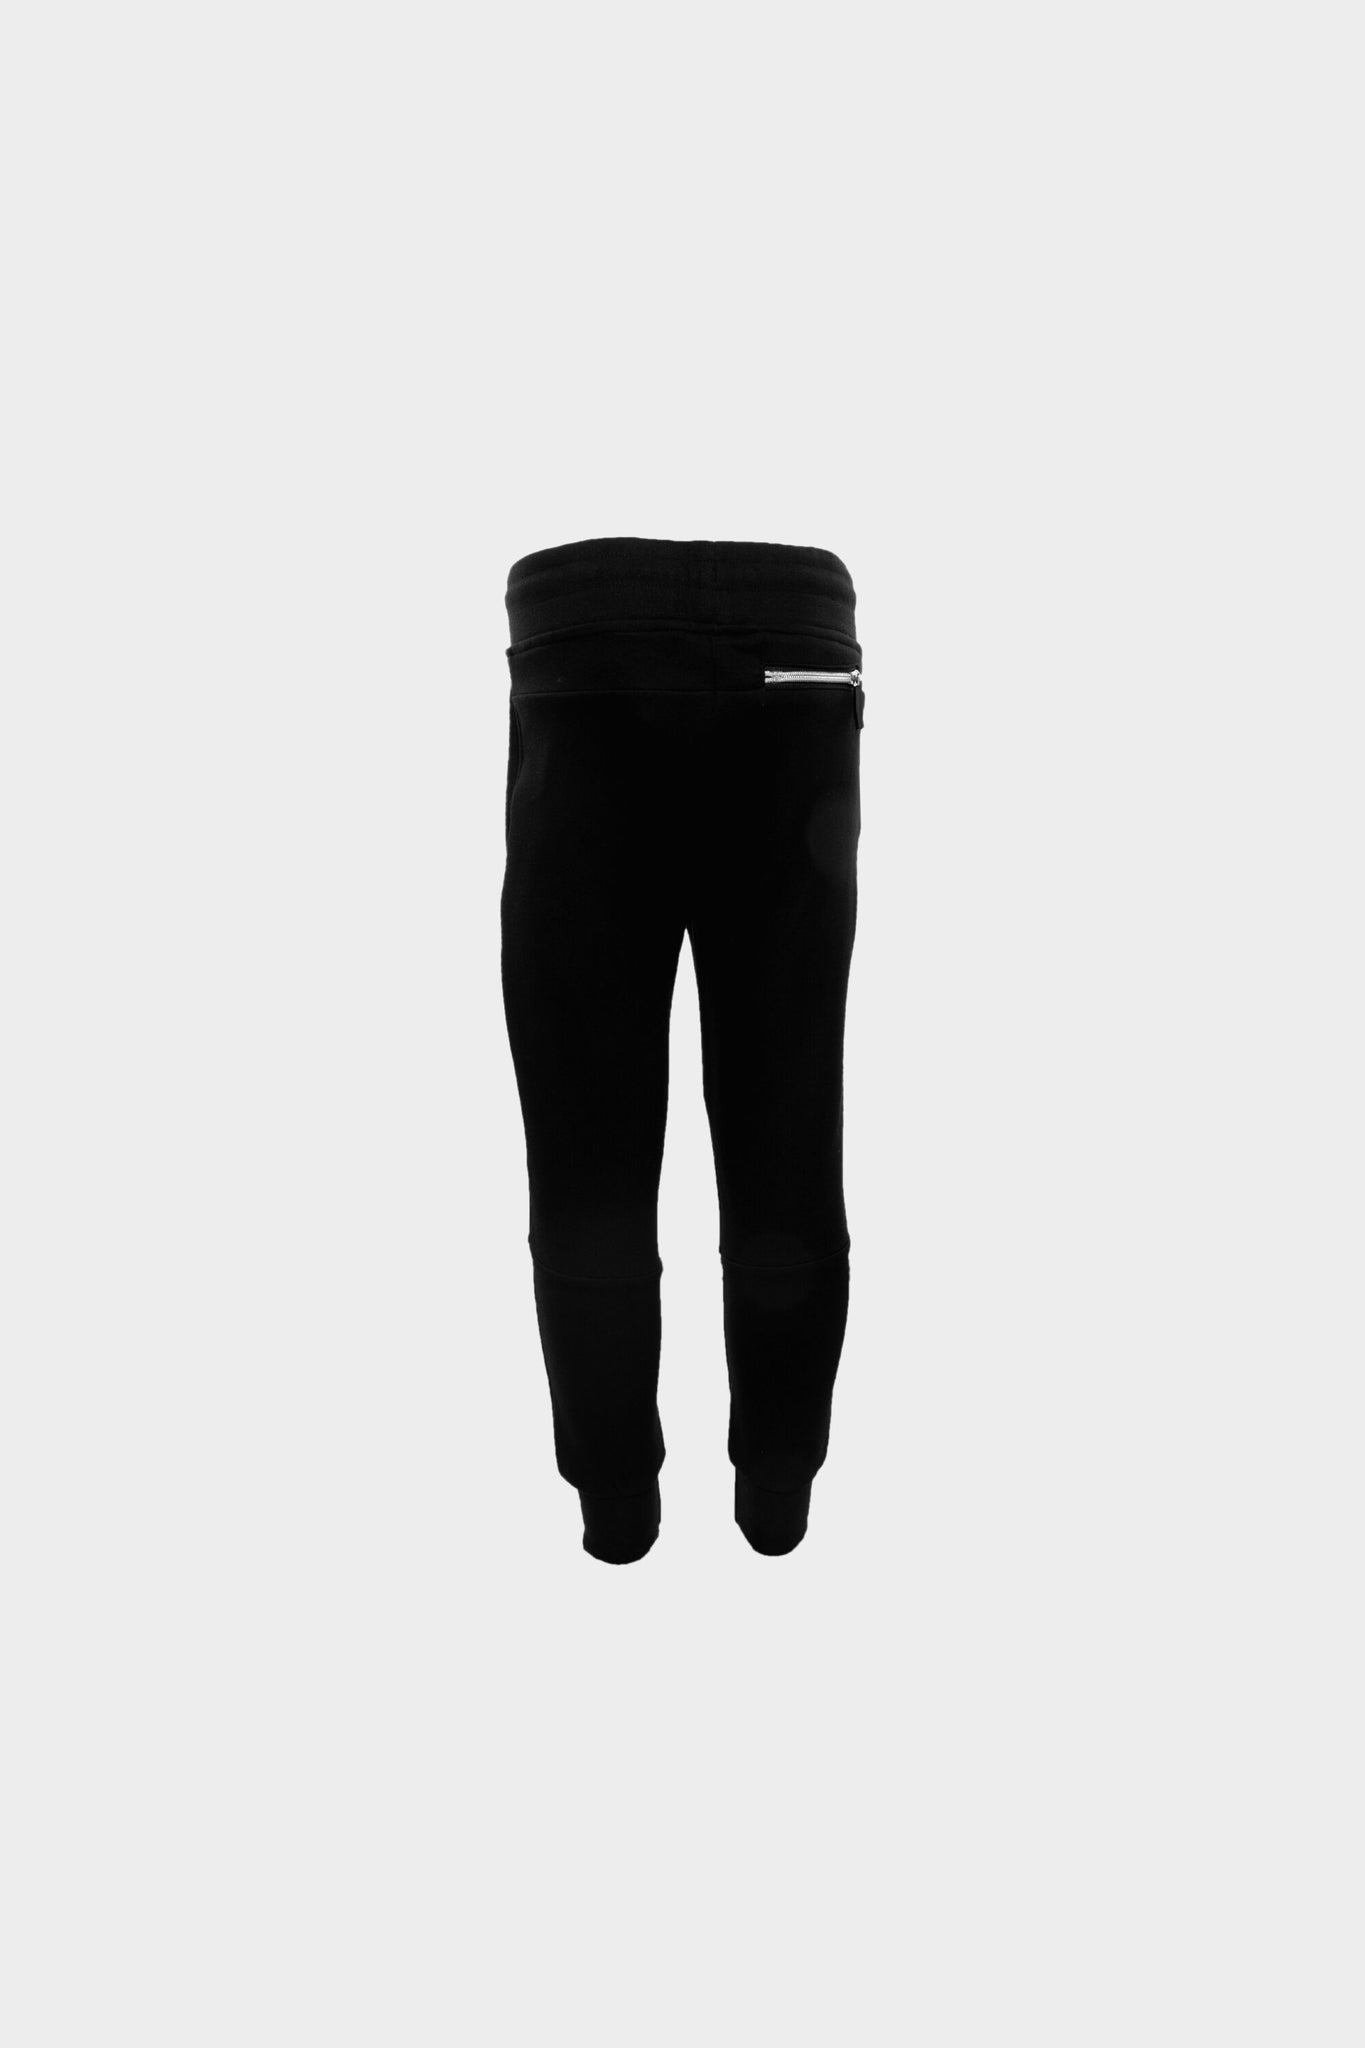 Q-Series Sweatpants Kids Black